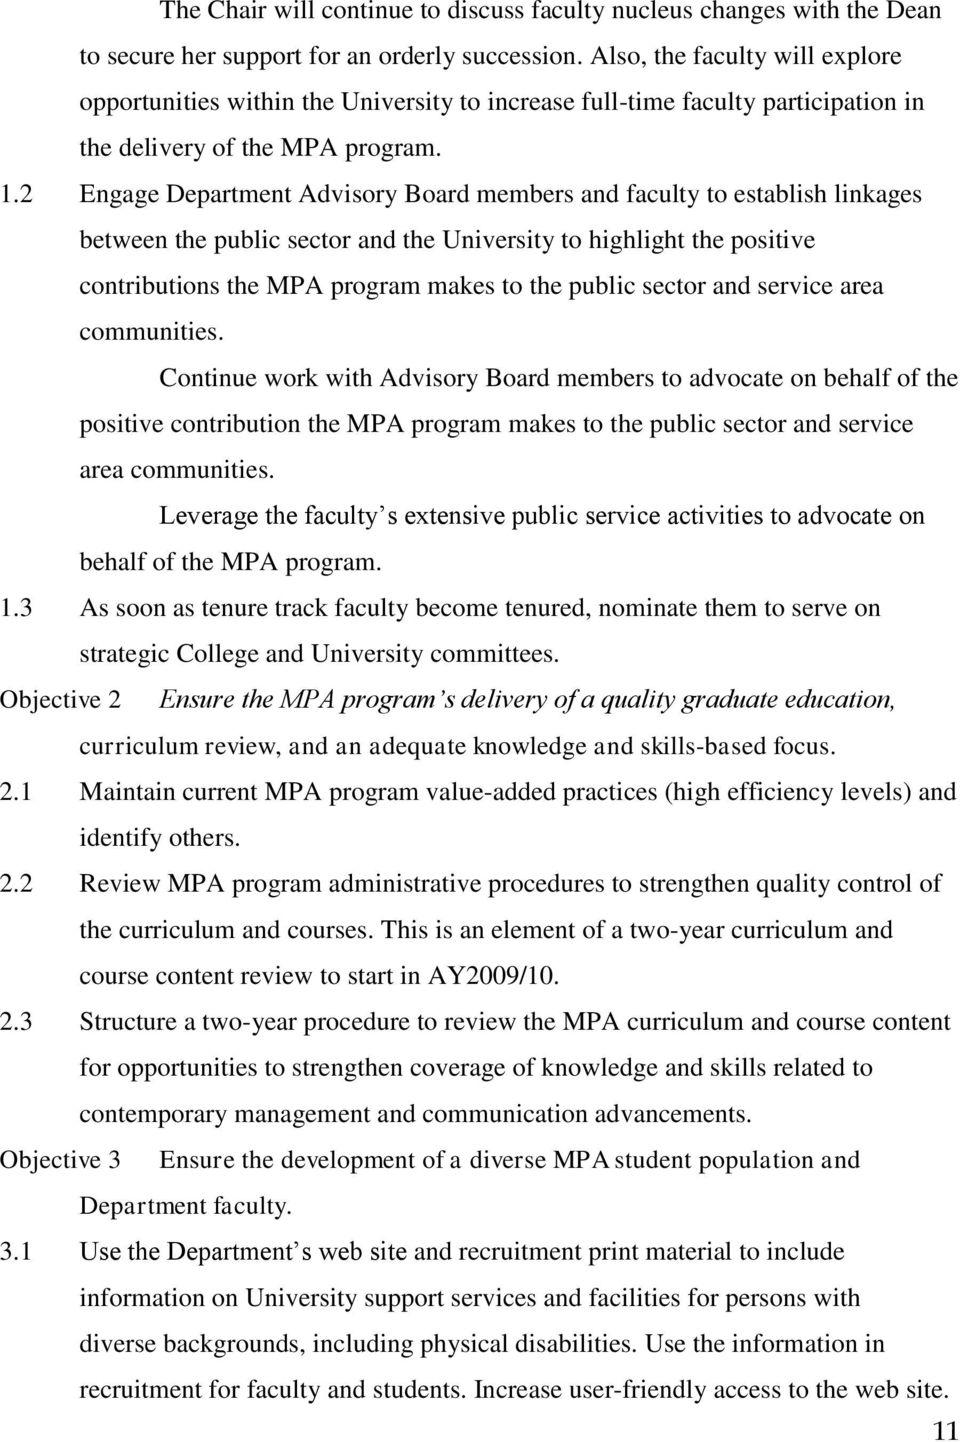 2 Engage Department Advisory Board members and faculty to establish linkages between the public sector and the University to highlight the positive contributions the MPA program makes to the public